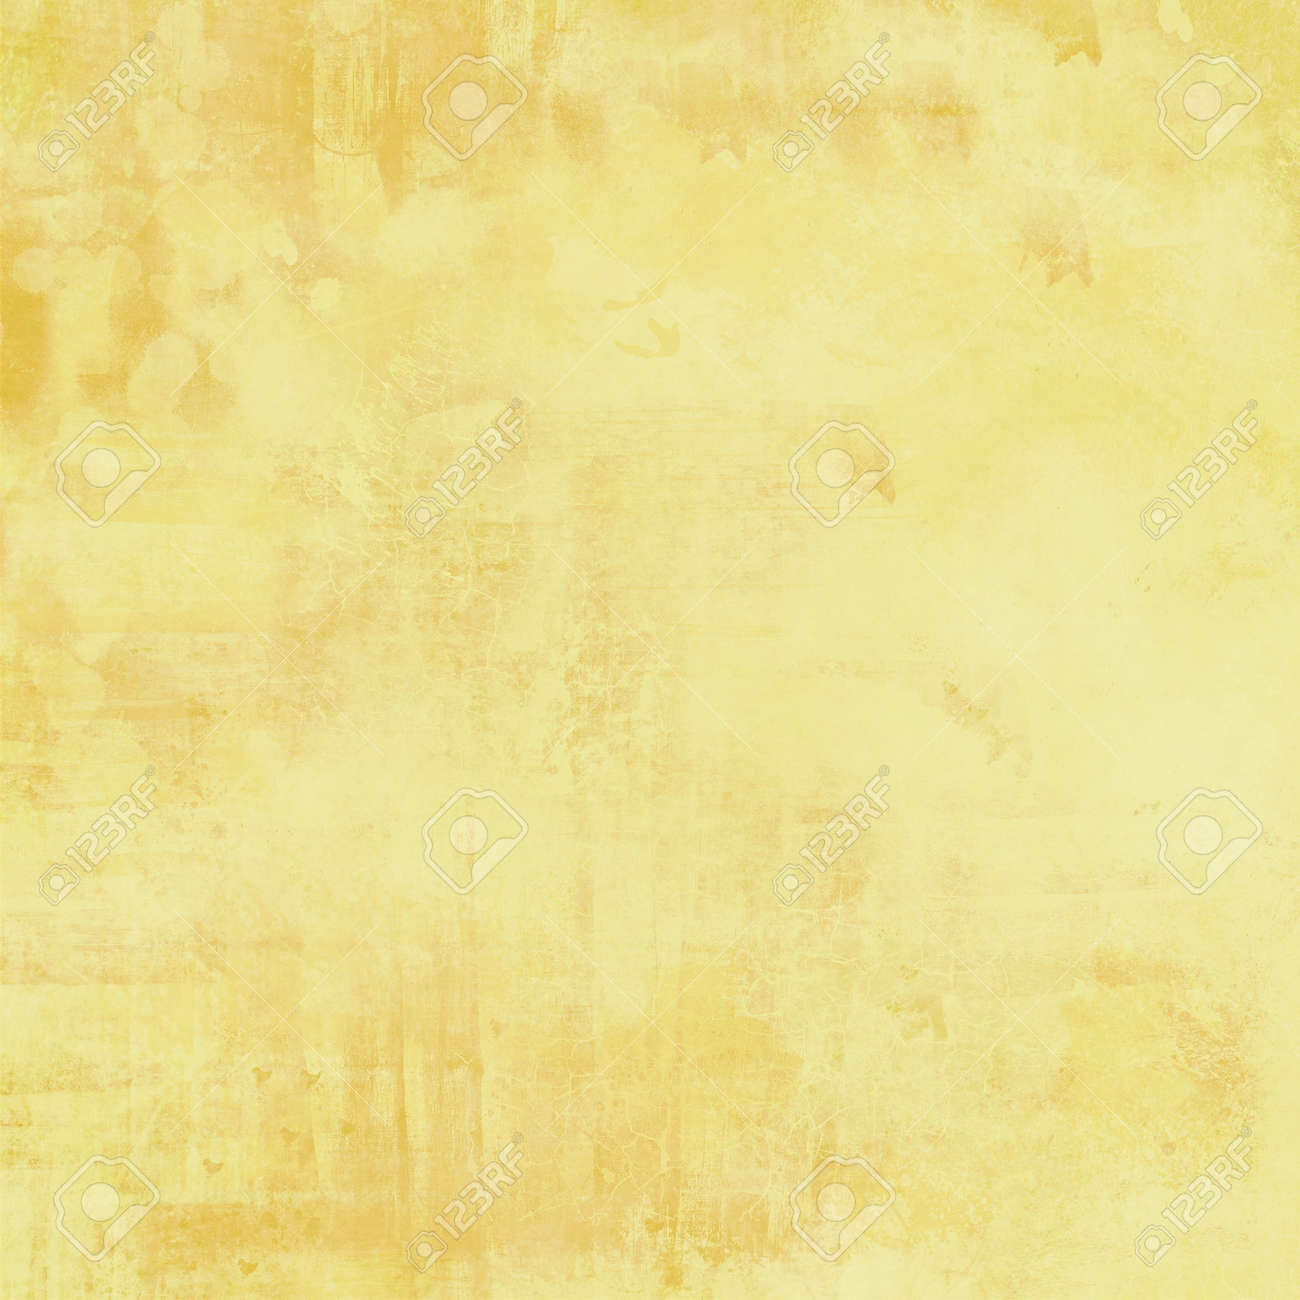 grunge abstract background - 140316296